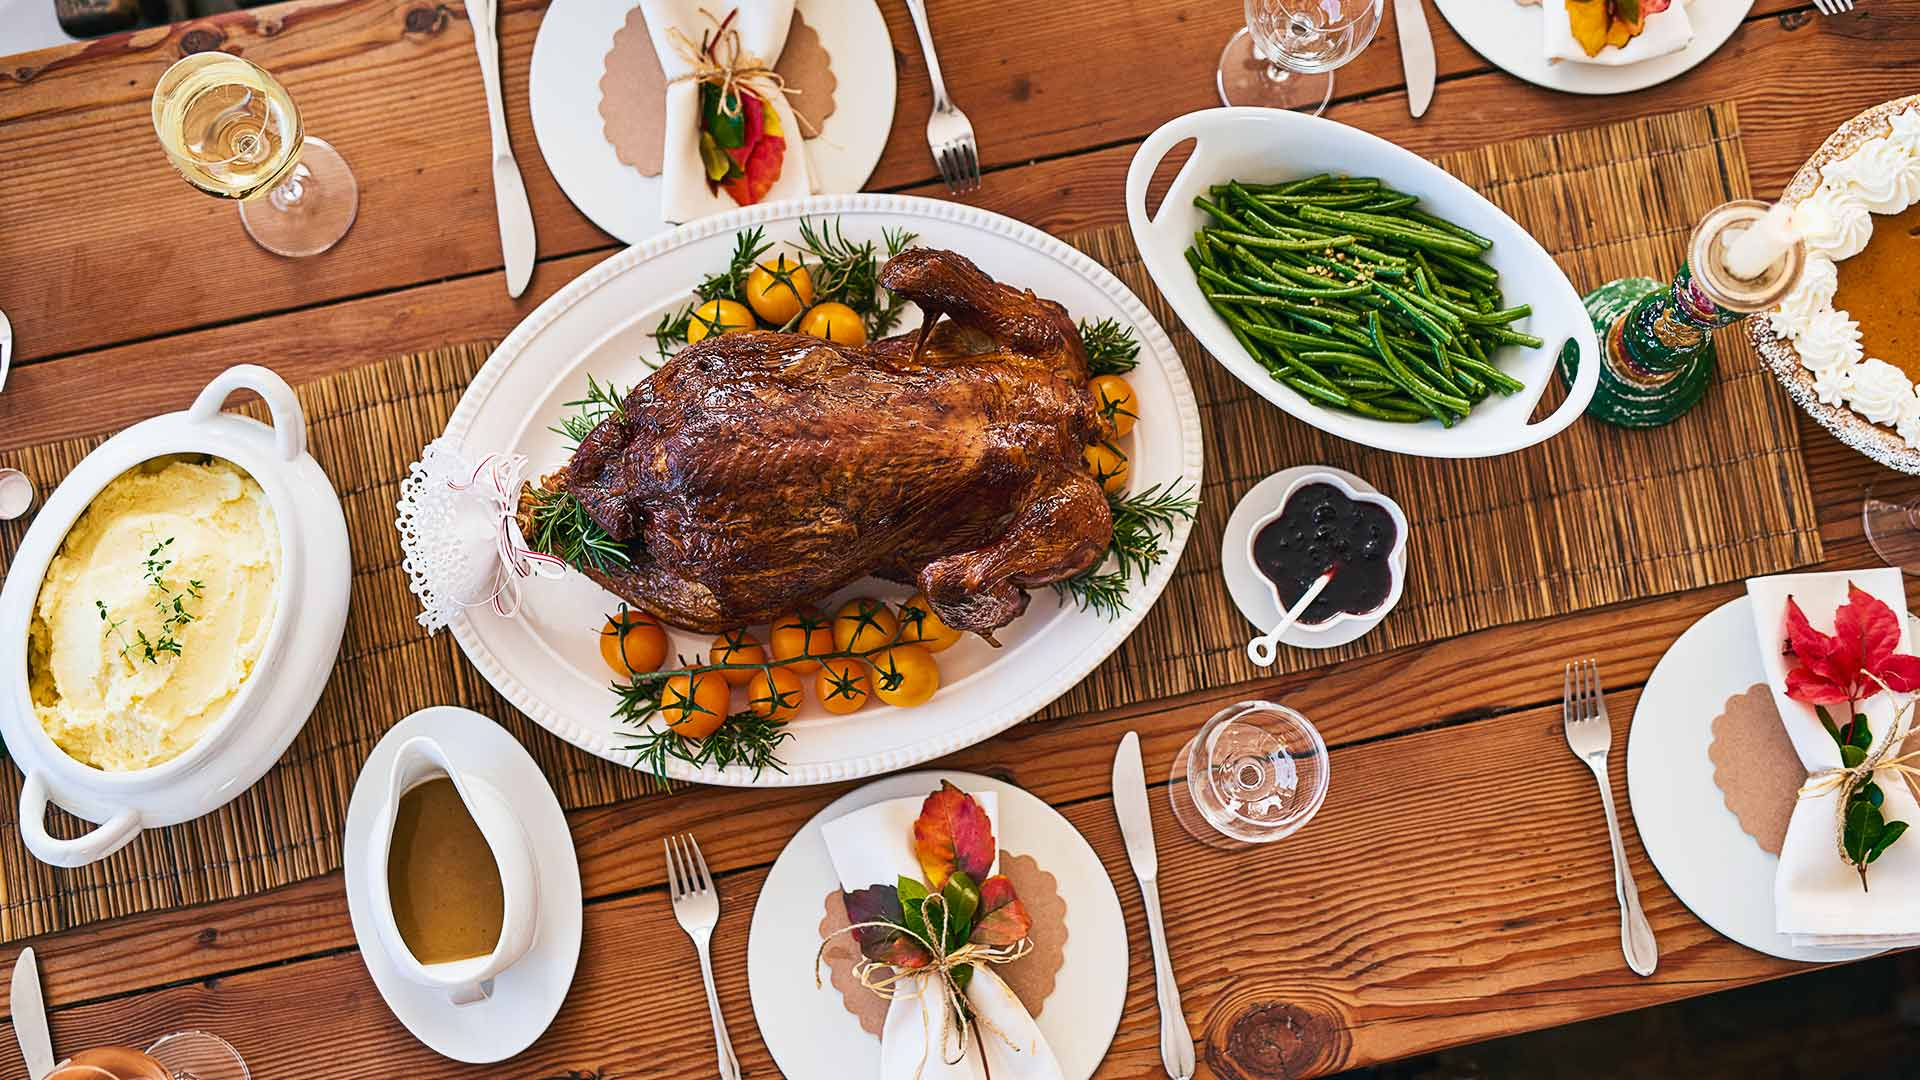 Turkey Dinner on the Lawn? Creative Ways to Celebrate the Holidays in 2020